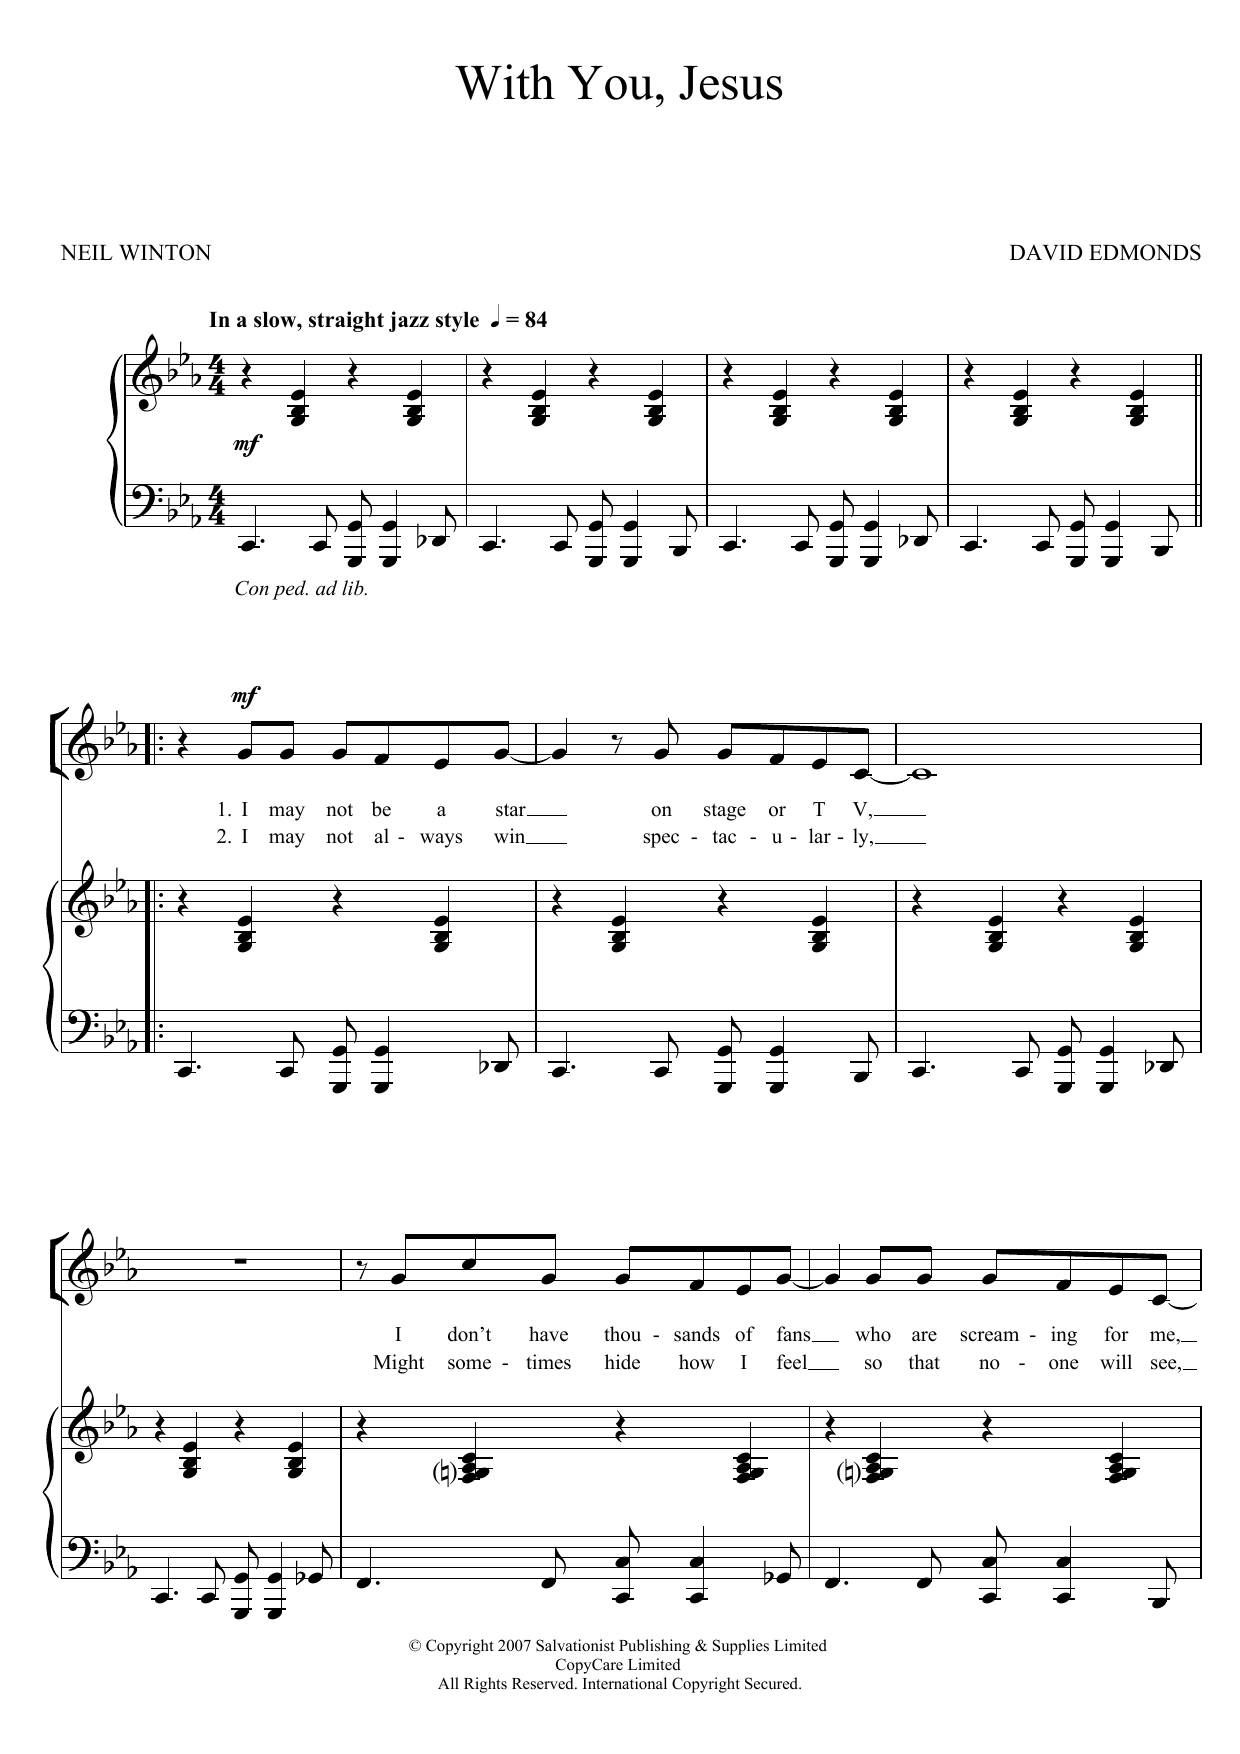 With You, Jesus Sheet Music